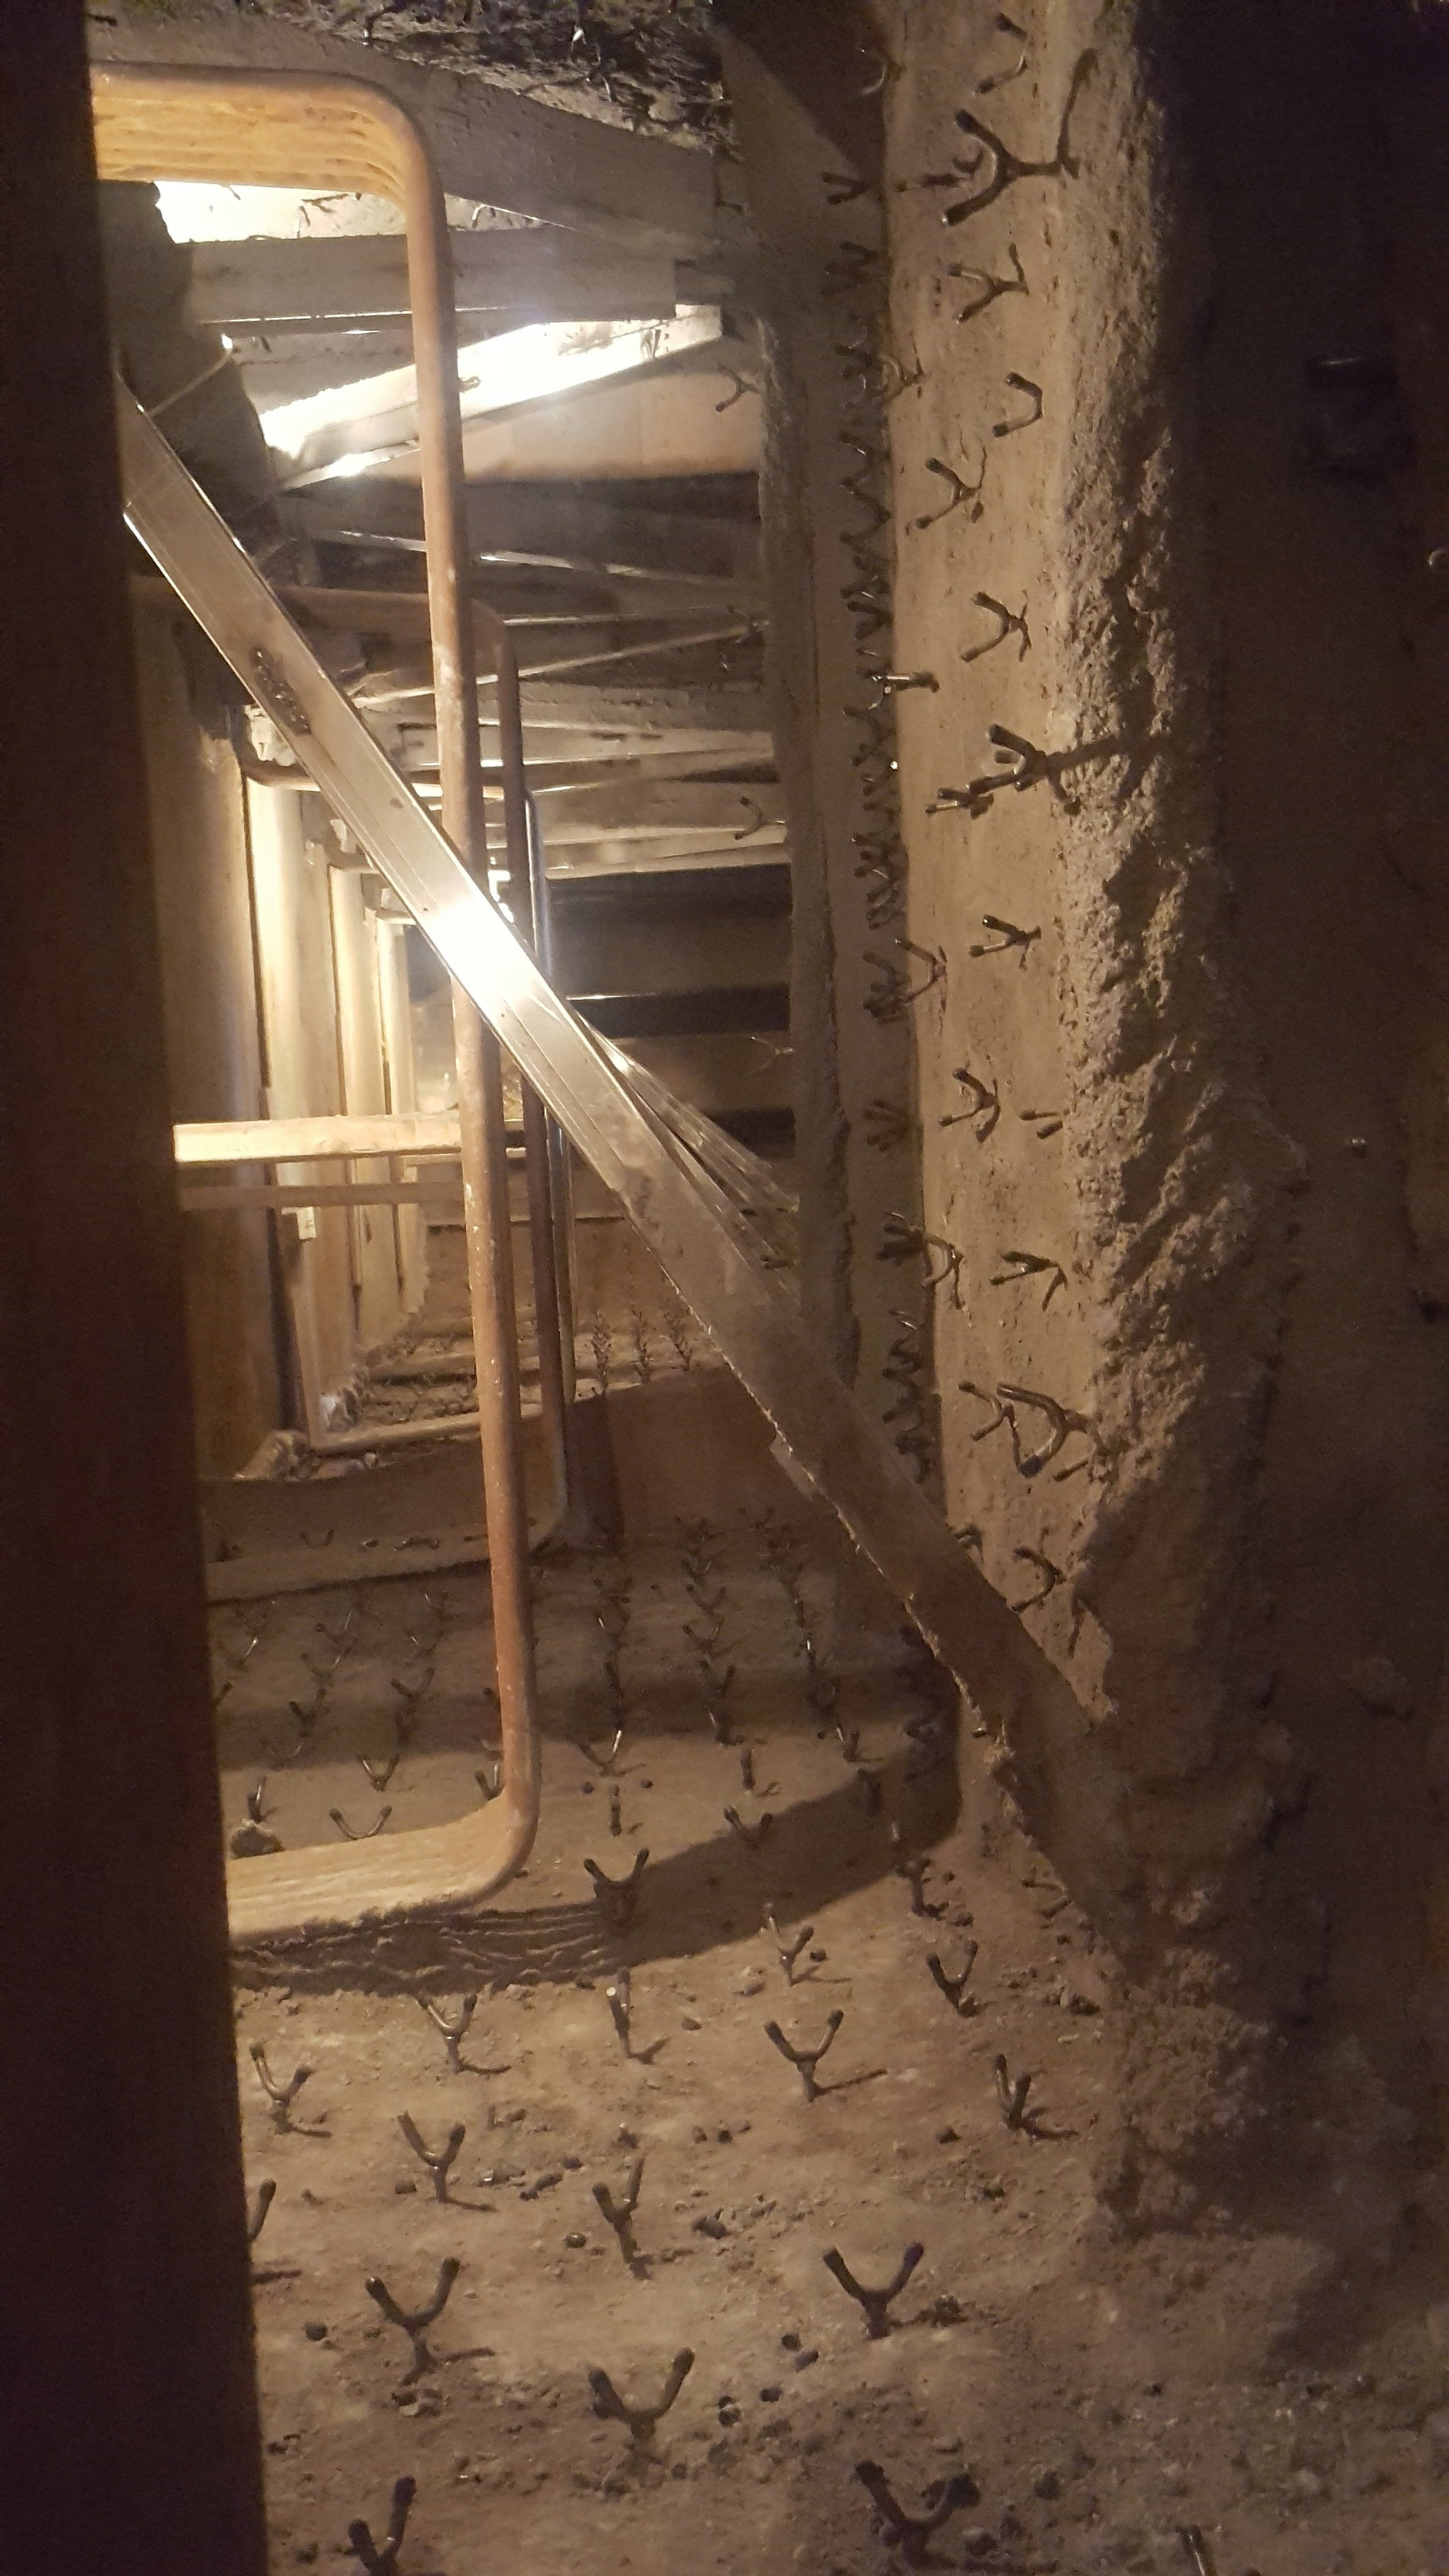 Completed Shotcrete Insulation Lining in Ductwork, Hotface to be shot over.